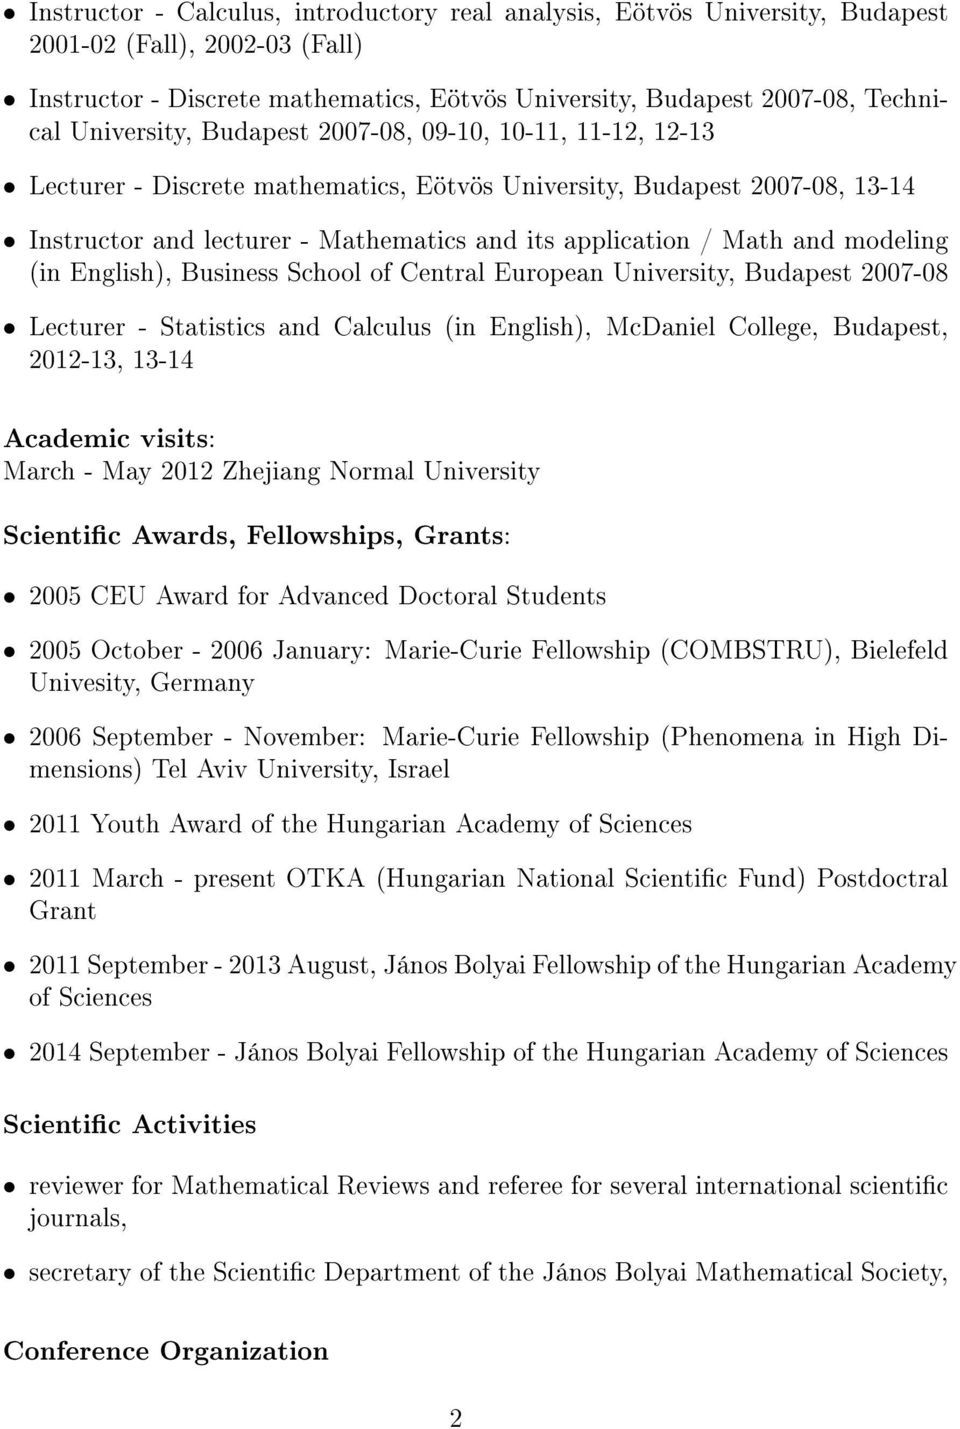 and modeling (in English), Business School of Central European University, Budapest 2007-08 Lecturer - Statistics and Calculus (in English), McDaniel College, Budapest, 2012-13, 13-14 Academic